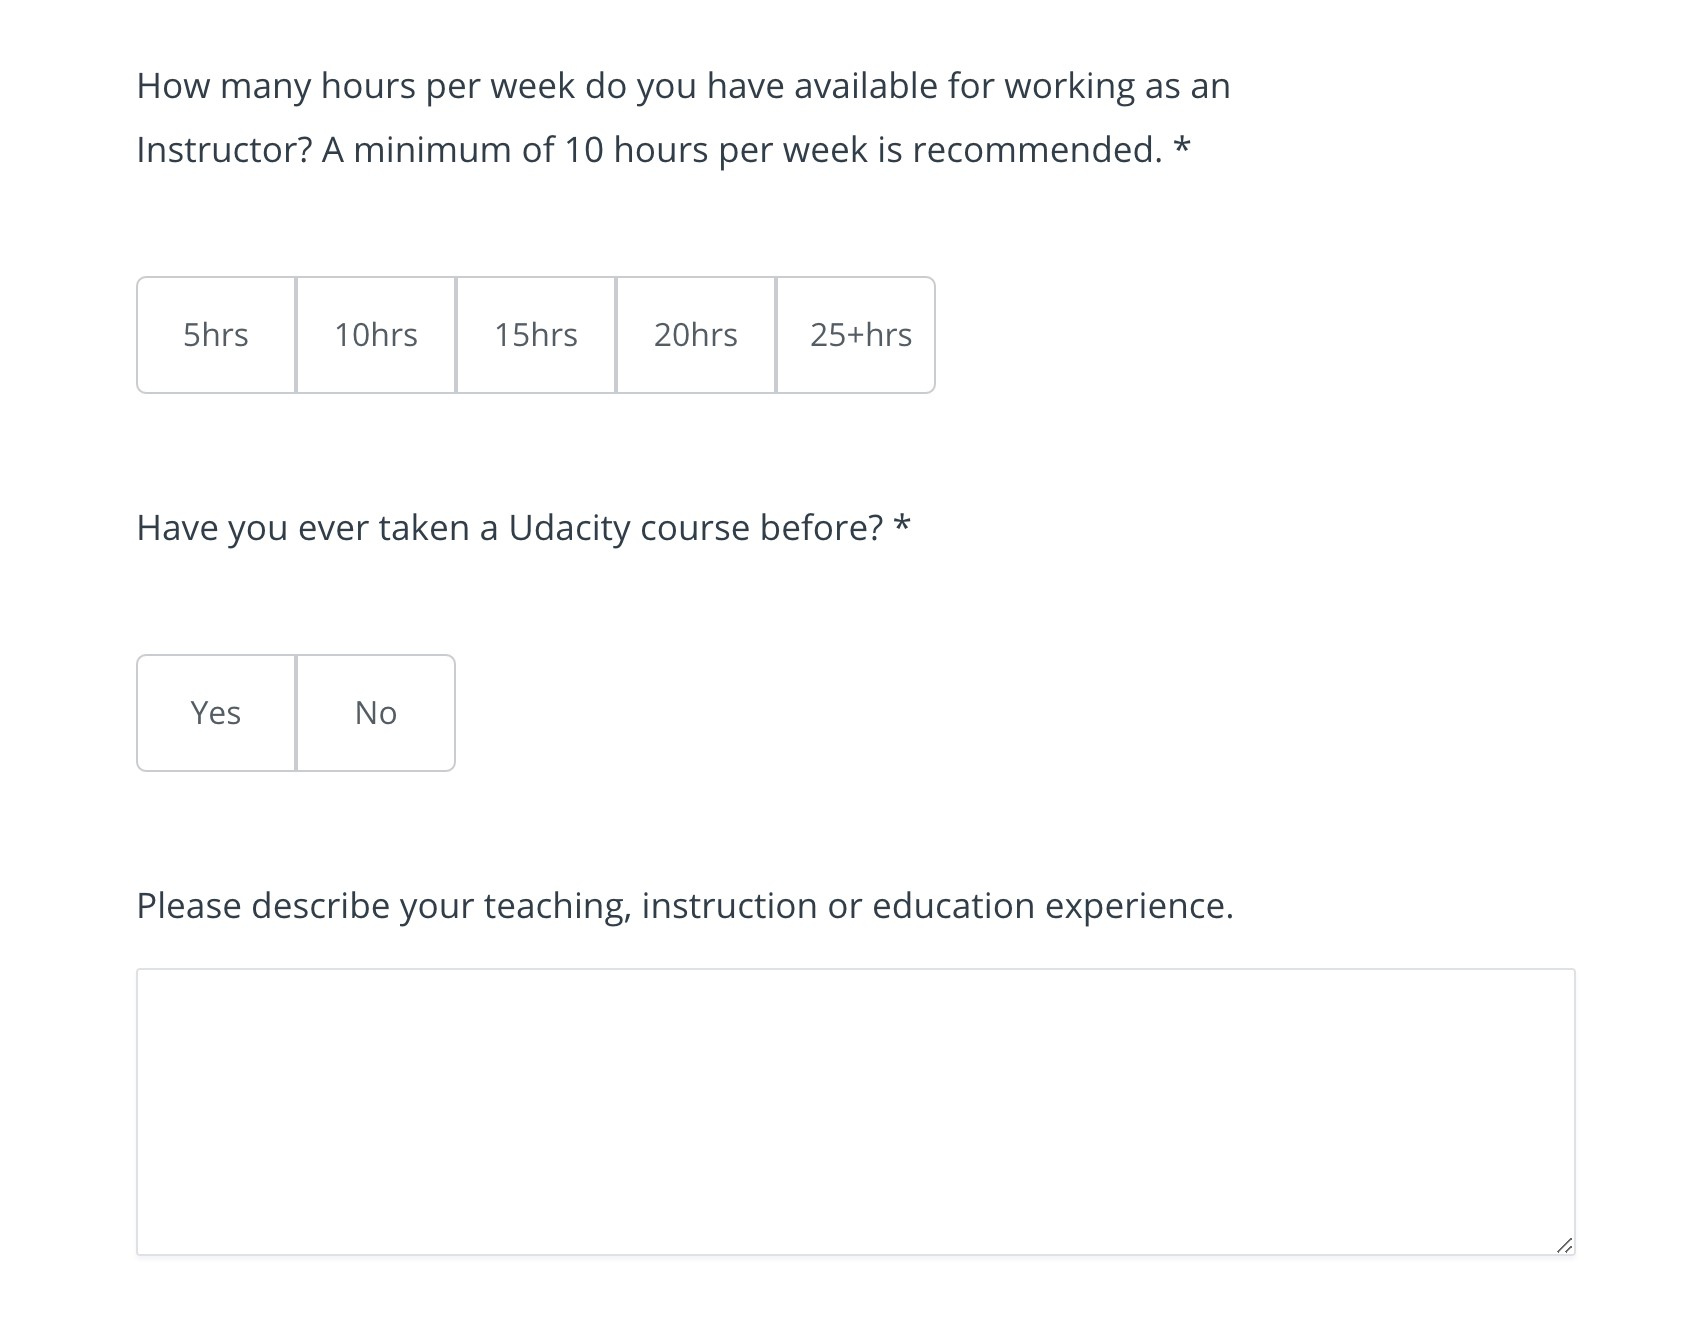 udemy questionnaire